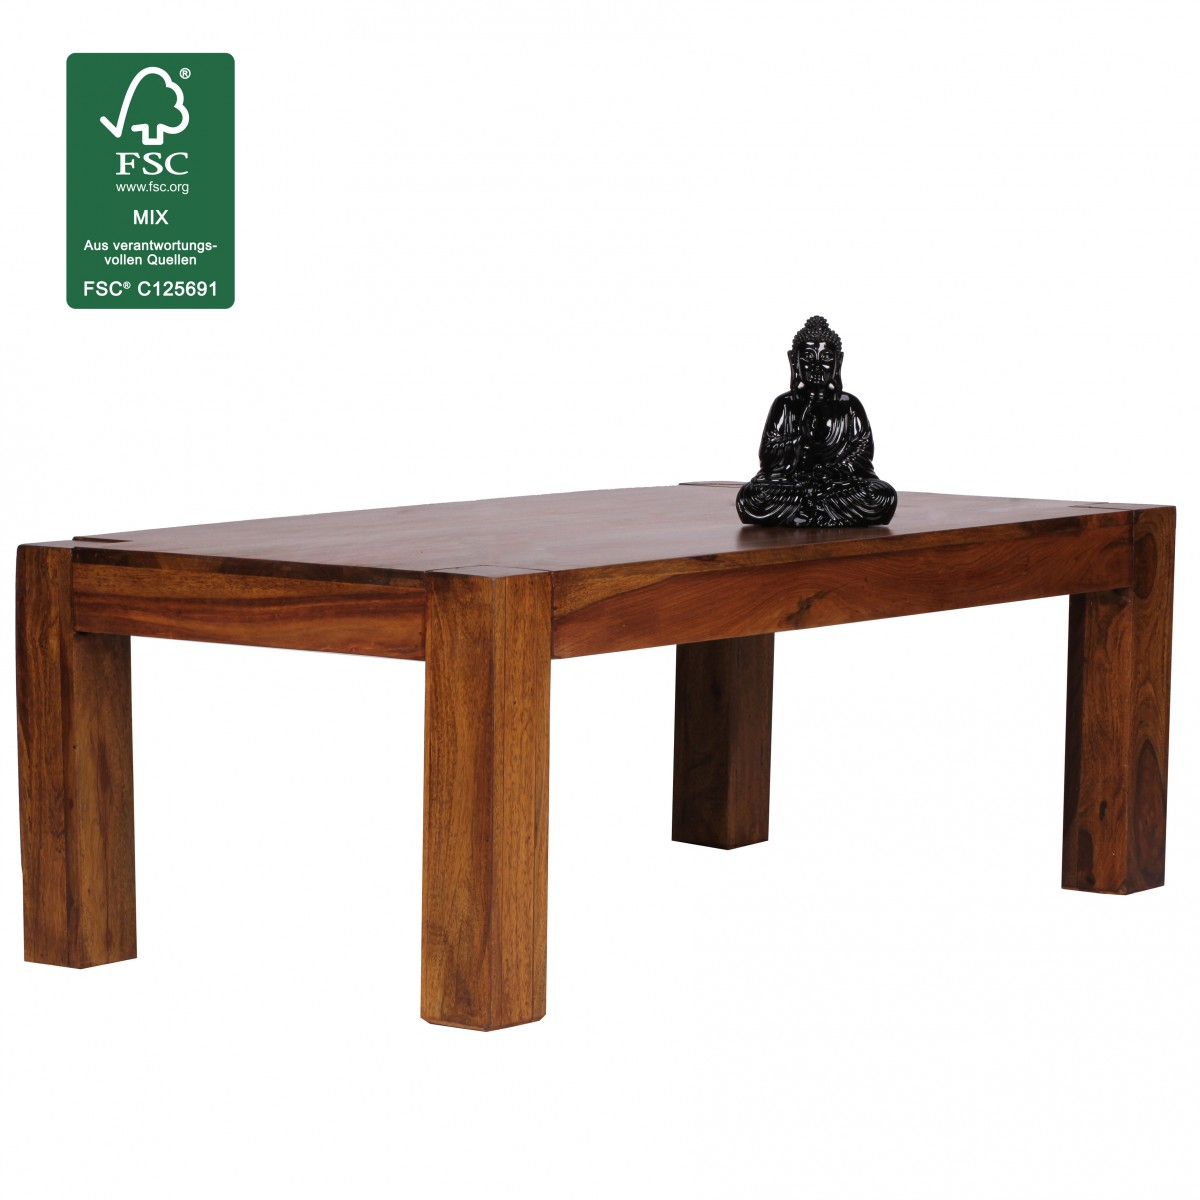 Very Impressive portraiture of  SOLID WOOD COFFEE SIDE TABLE LIVING ROOM FURNITURE 110x60 NEW eBay with #6F381C color and 1200x1200 pixels